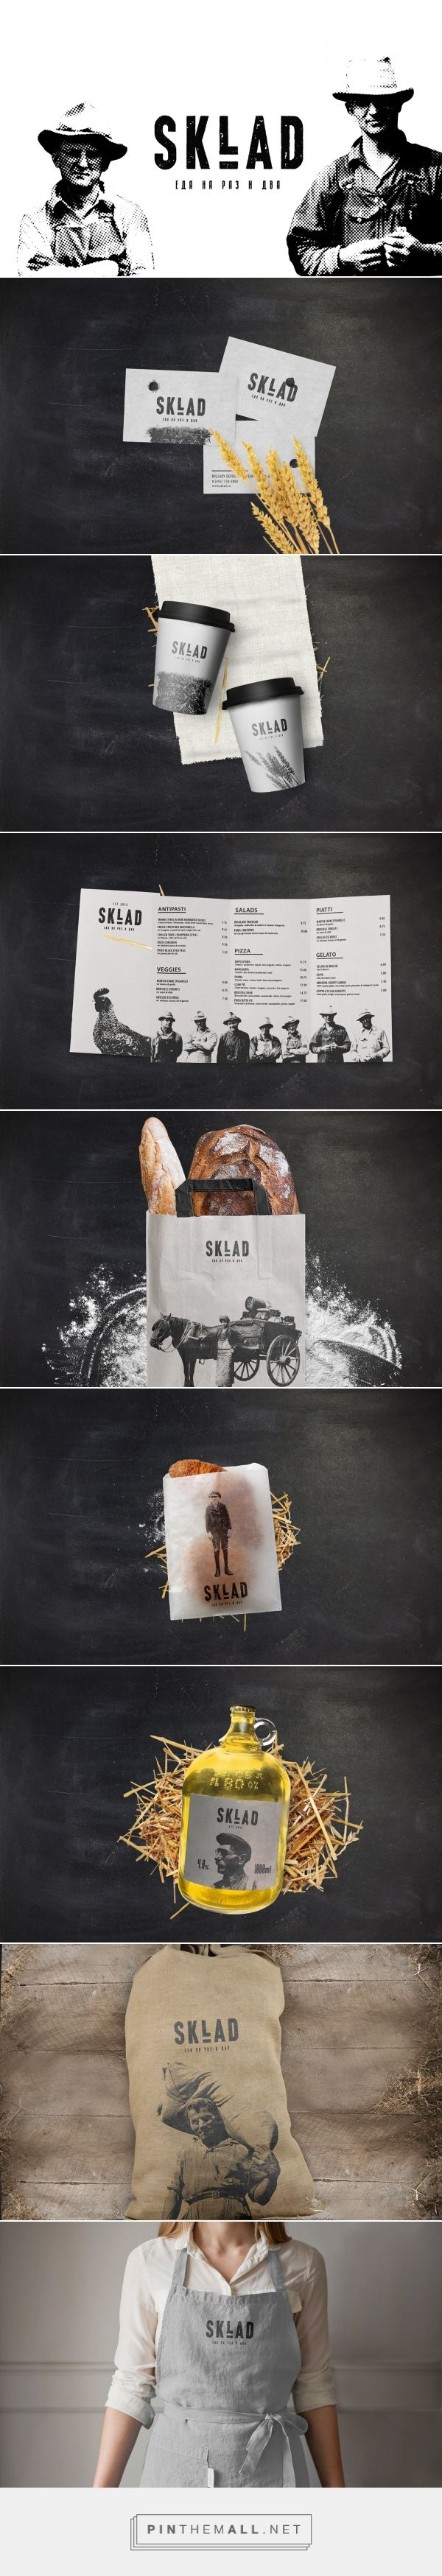 Sklad Restaurant Branding by Stepan Solodkov | Fivestar Branding Agency – Design and Branding Agency & Curated Inspiration Gallery